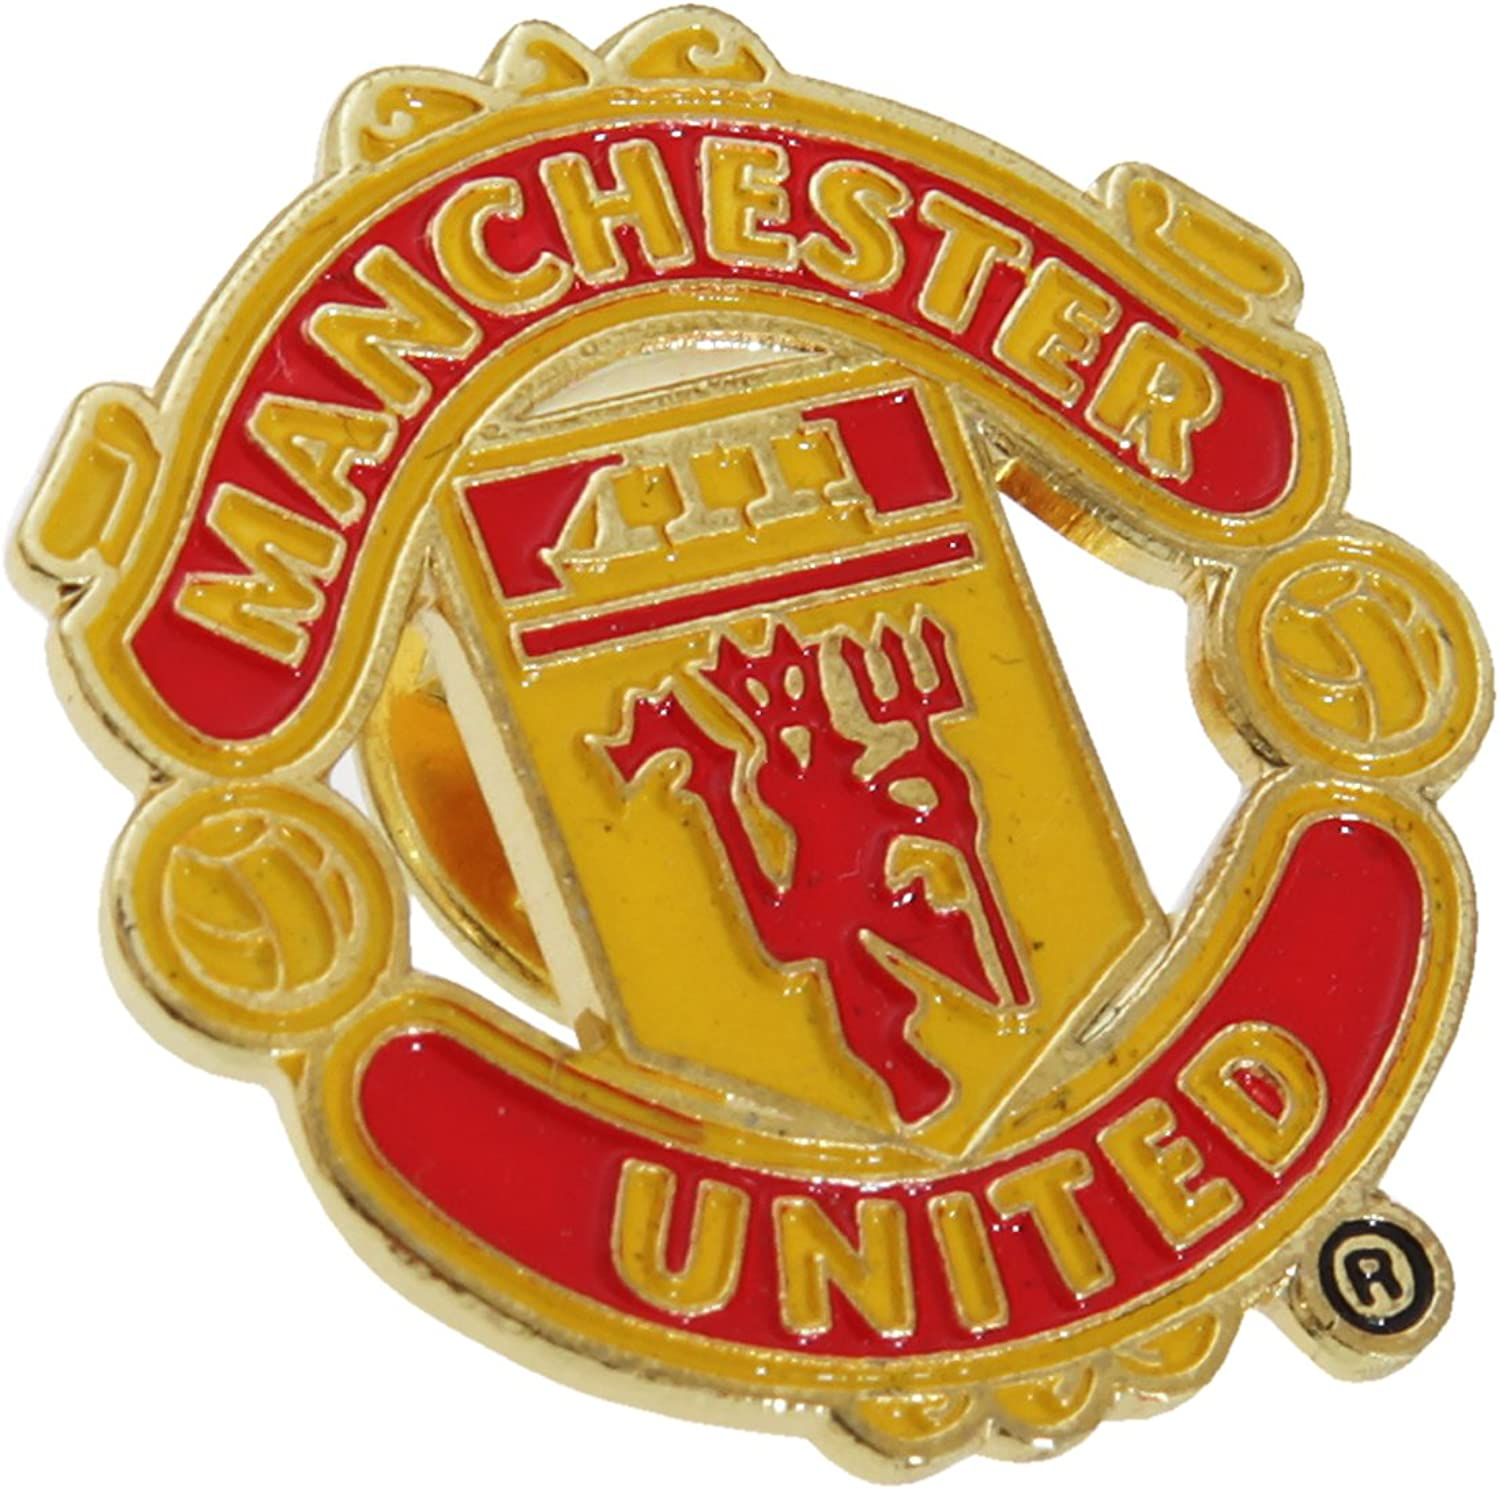 Manchester United FC Official Metal Badge Football Pin Quality 2021new shipping free shipping inspection Crest